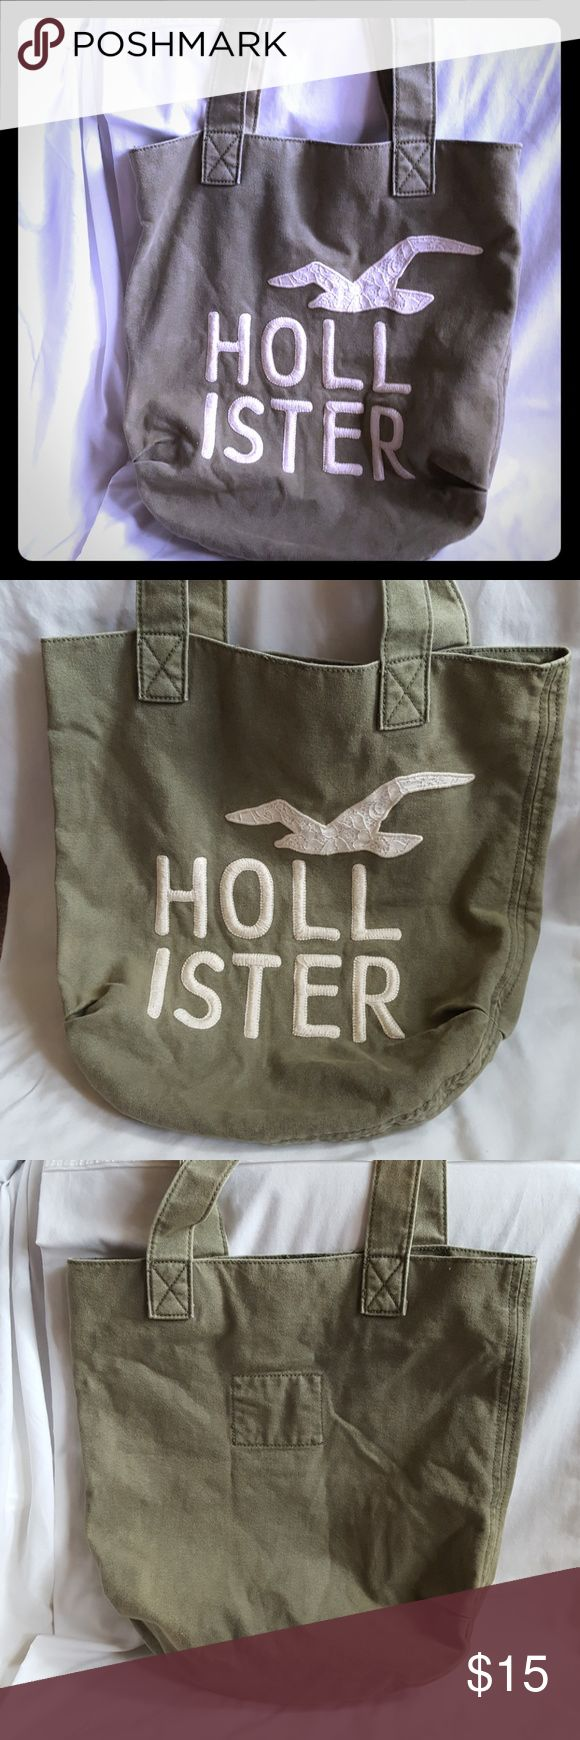 "Hollister Tote Bag in Army Green Classic Hollister tote bag in army green, khaki,  avocado or olive green. Bag is 16"" tall x 15"" wide. Handles add 8"" to height.  Very good used condition. Smoke free and pet free home. Hollister Bags Totes"